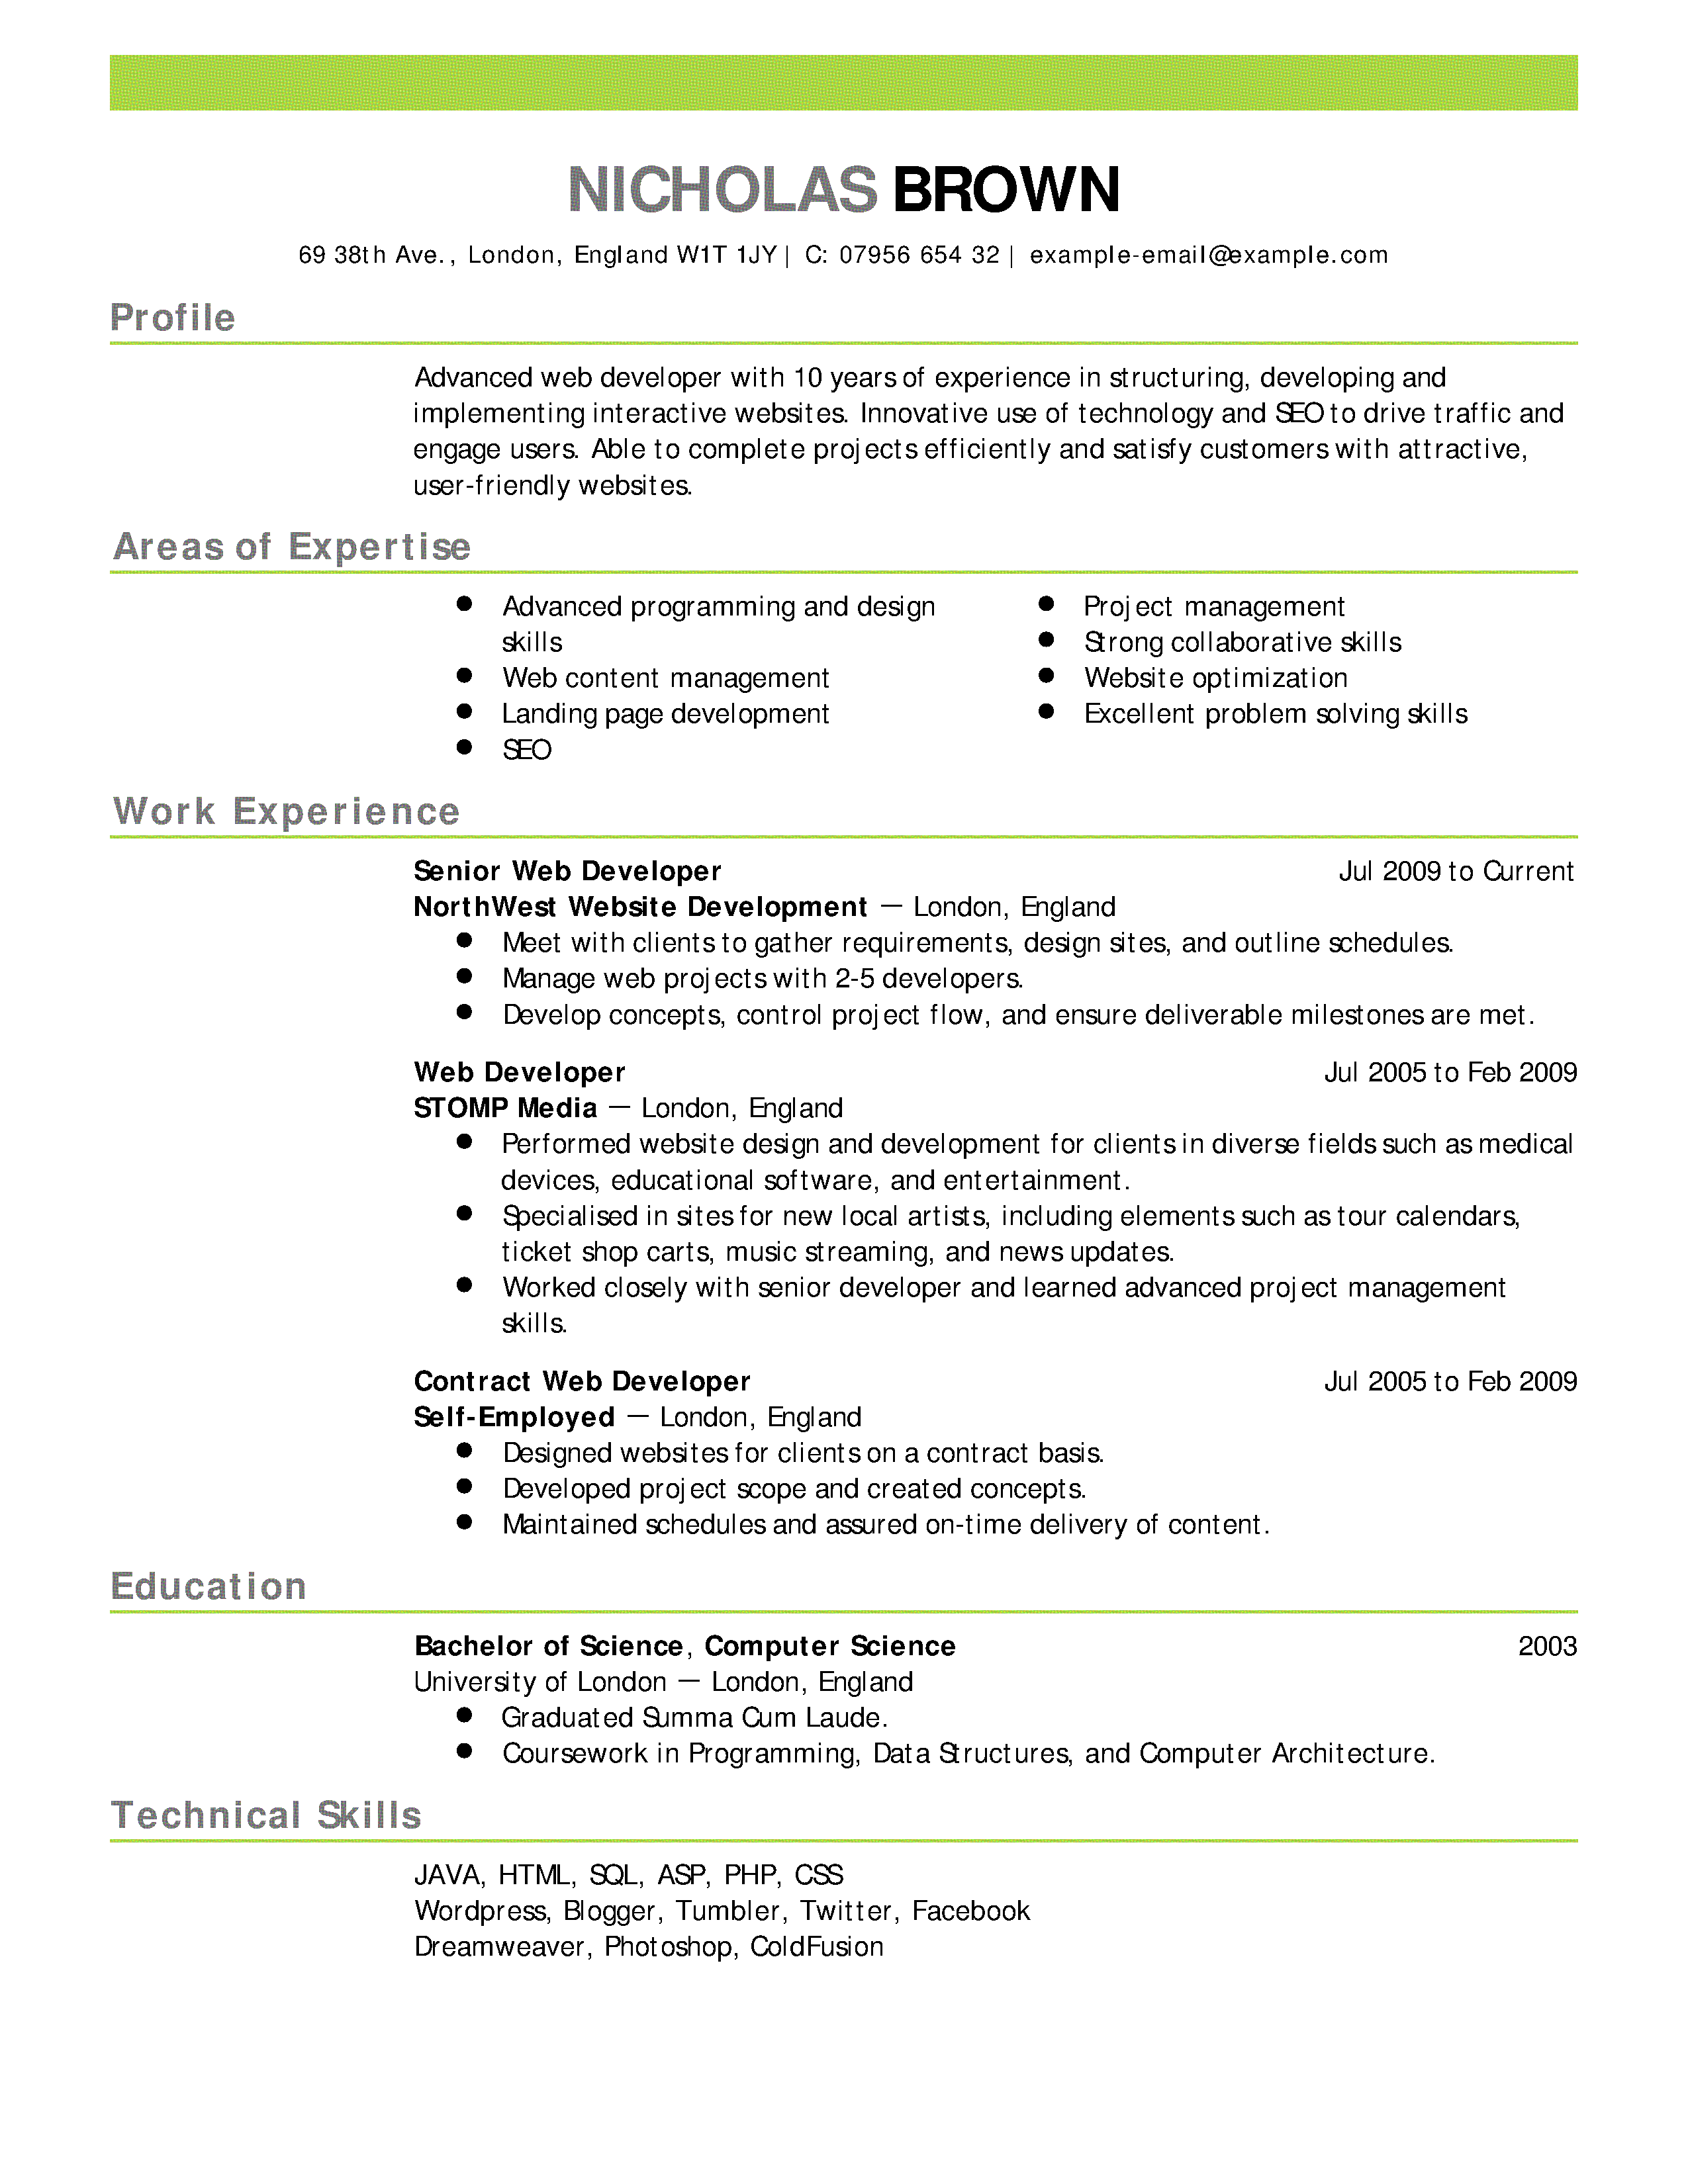 Teacher Resume Help You Are Smart And Accomplished But Does Your Resume Convey That